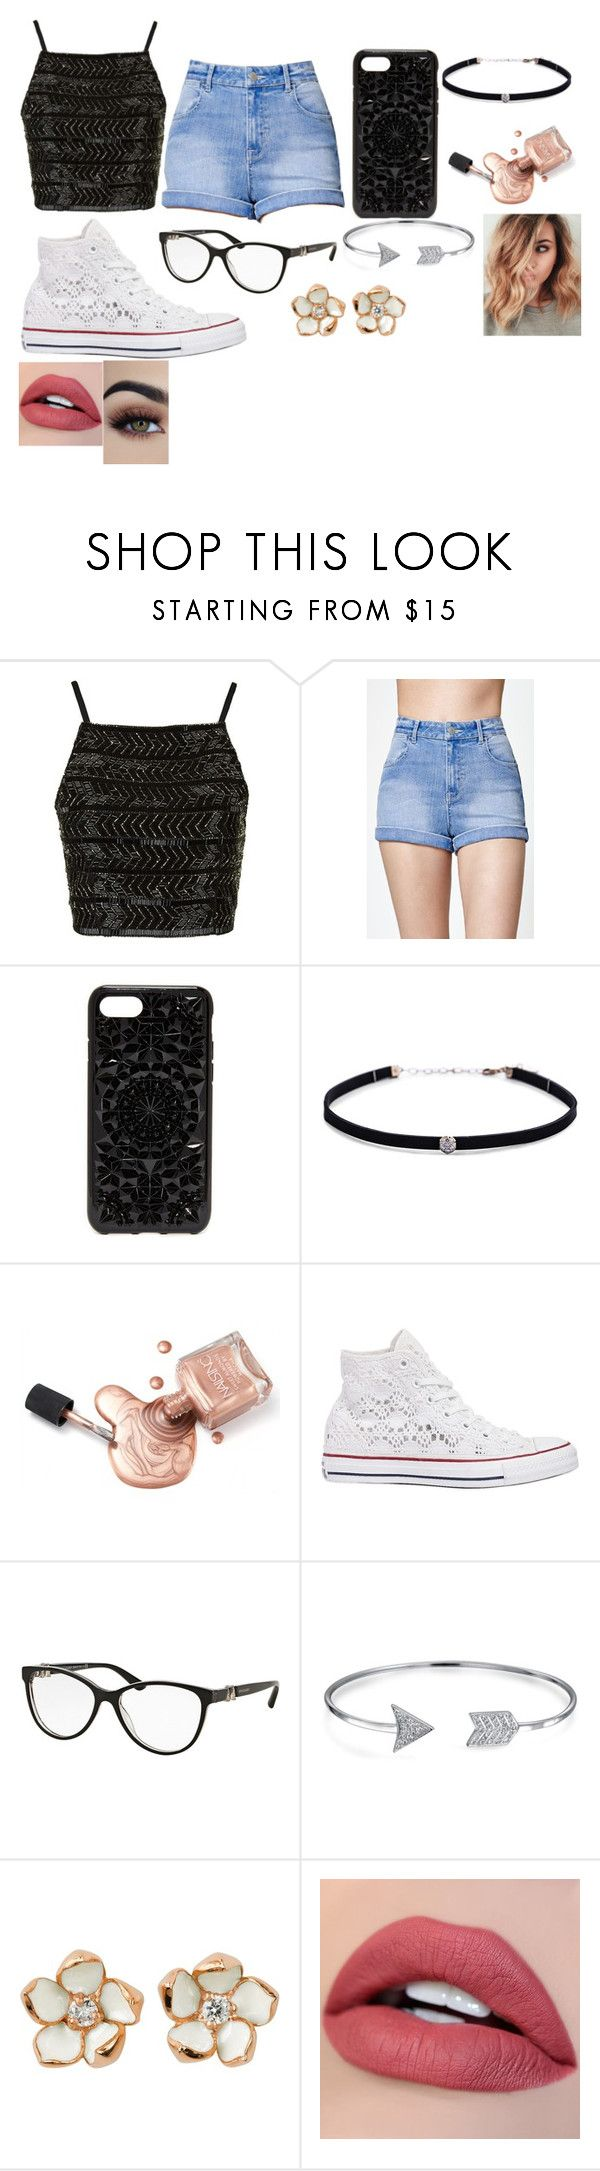 """""""Casual Summer"""" by abbytherose ❤ liked on Polyvore featuring Topshop, Kendall + Kylie, Felony Case, Carbon & Hyde, Converse, Bulgari, Bling Jewelry and Shaun Leane"""